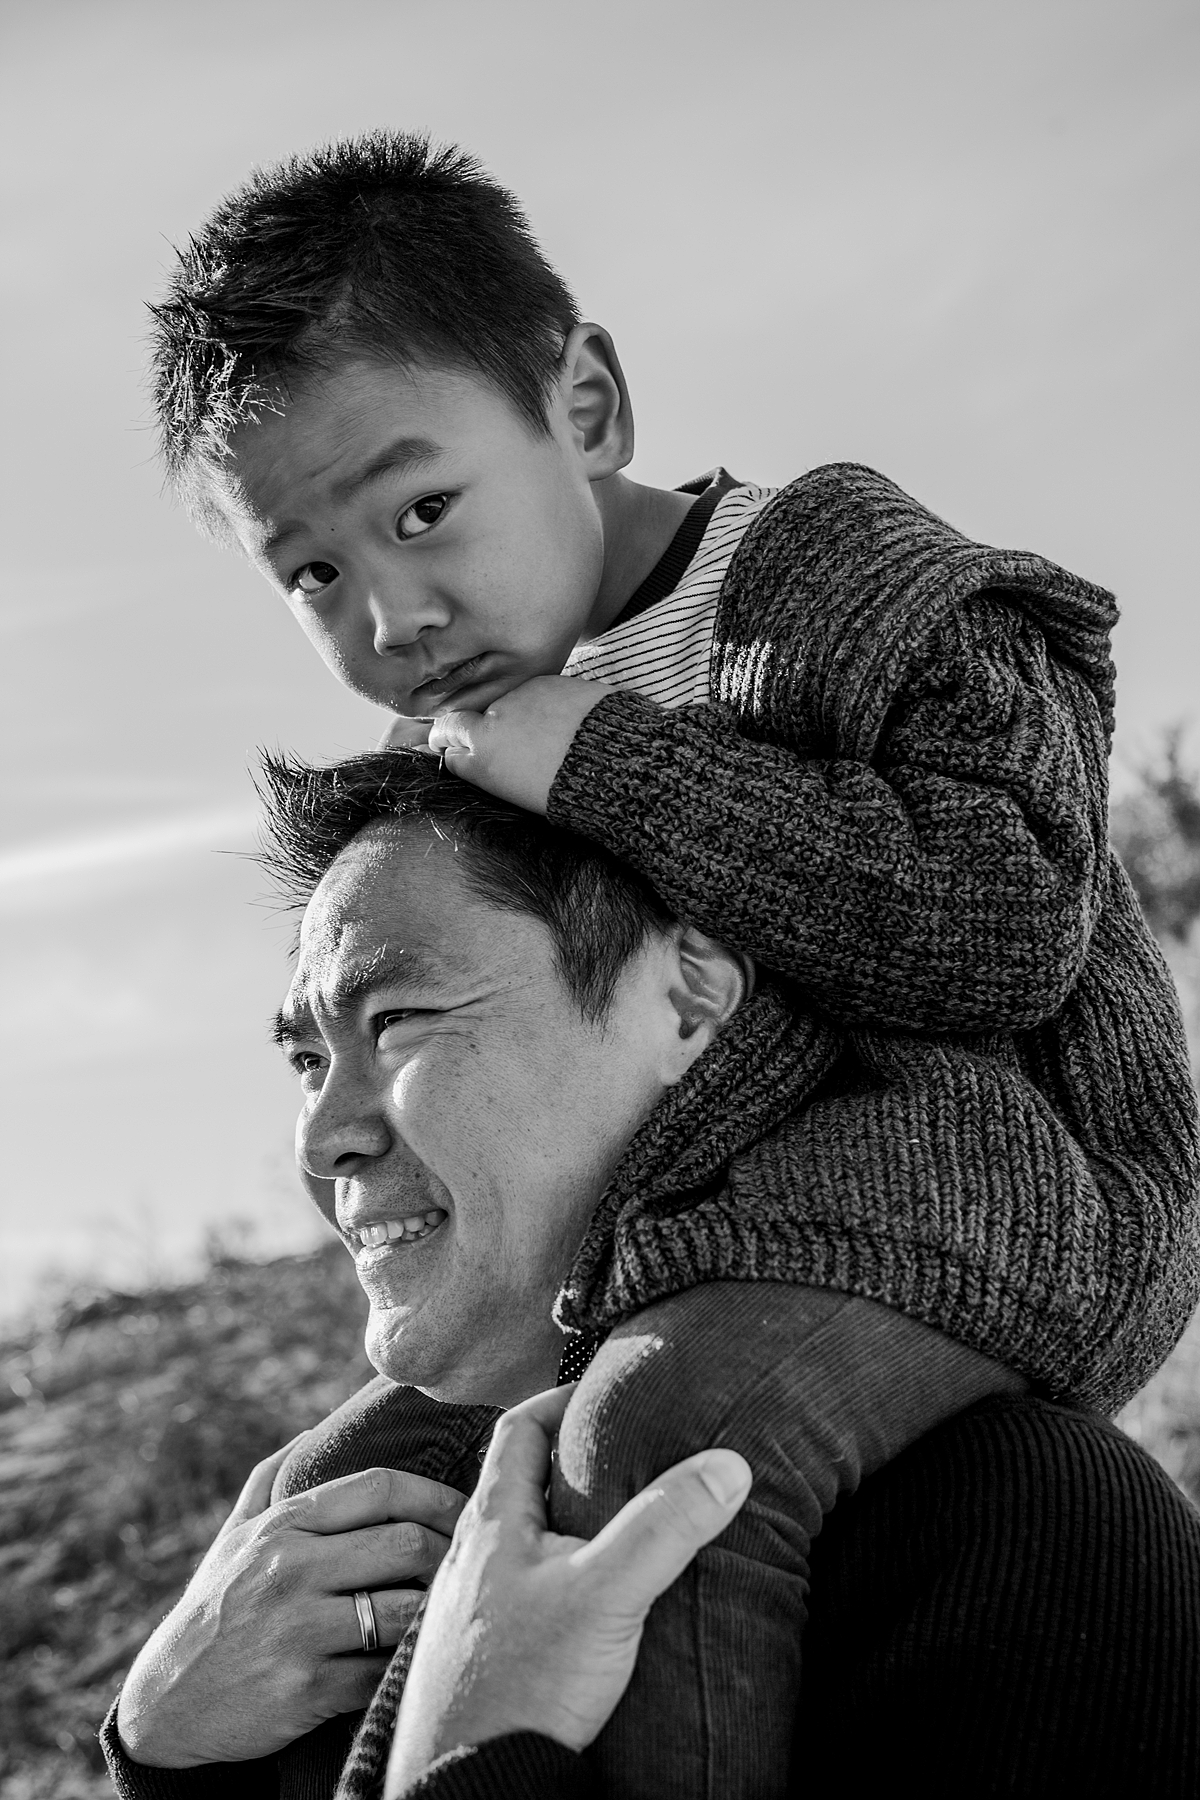 Orange County family photographer. B&W photo of dad giving his son a shoulder ride while son rests on dad's head at Top of the World Laguna Beach during outdoor family photo session